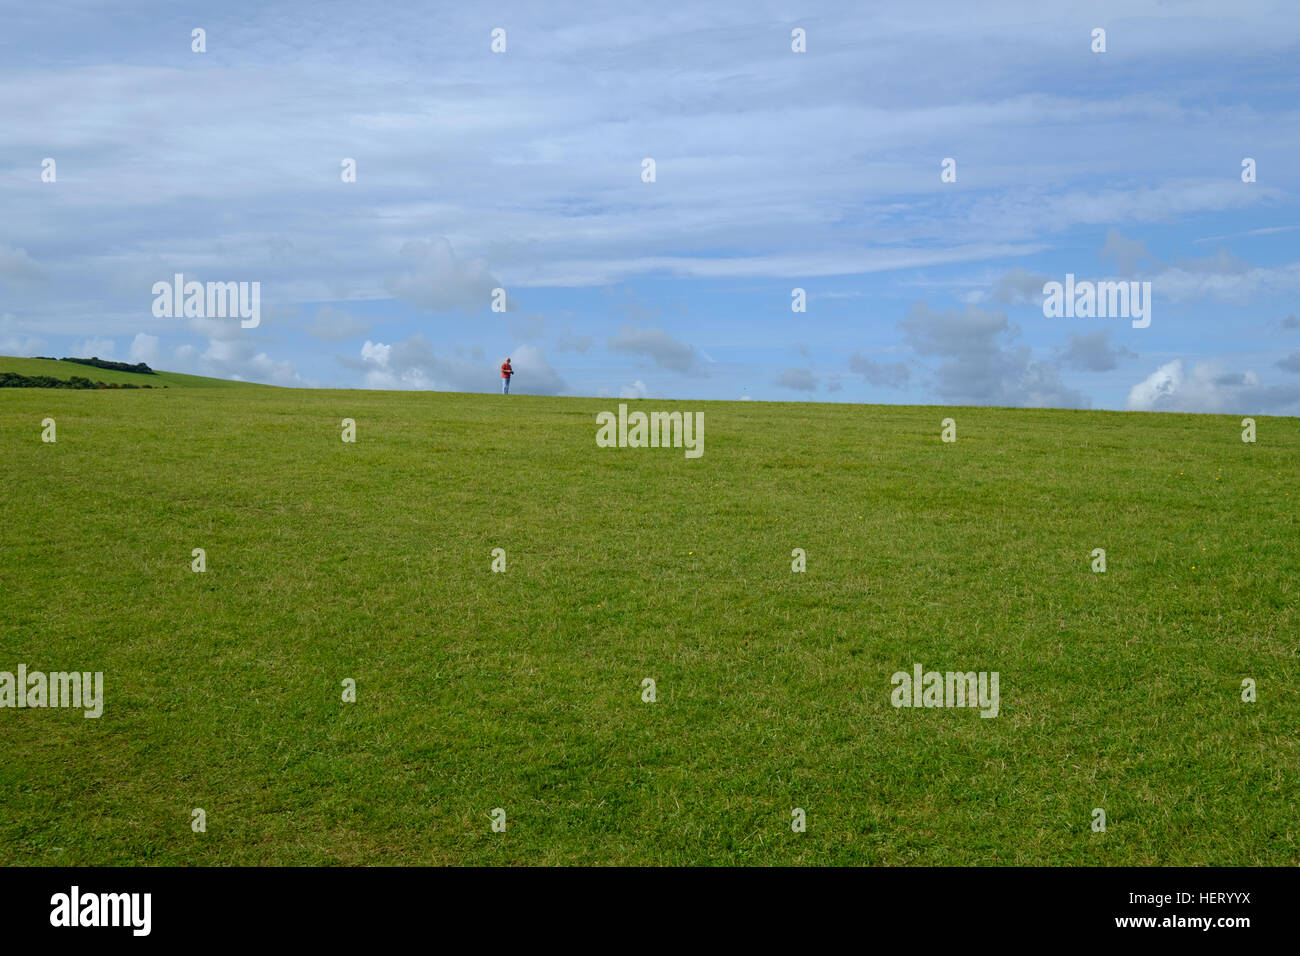 green field and blue sky with a solitary walker in a  red coat in the background - Stock Image